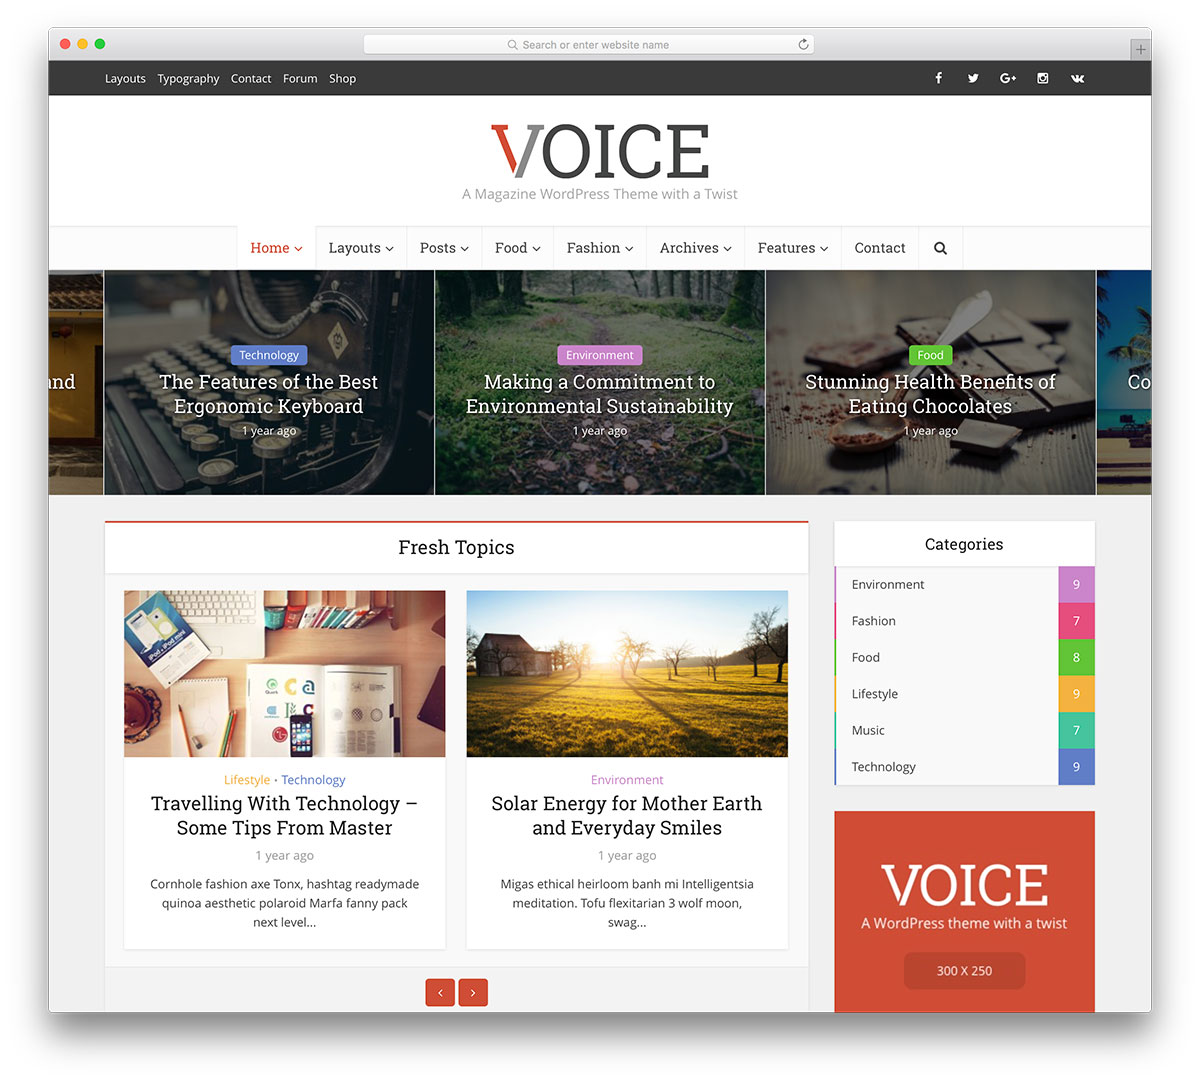 Voz-brilhante-wordpress-magazine-website-template